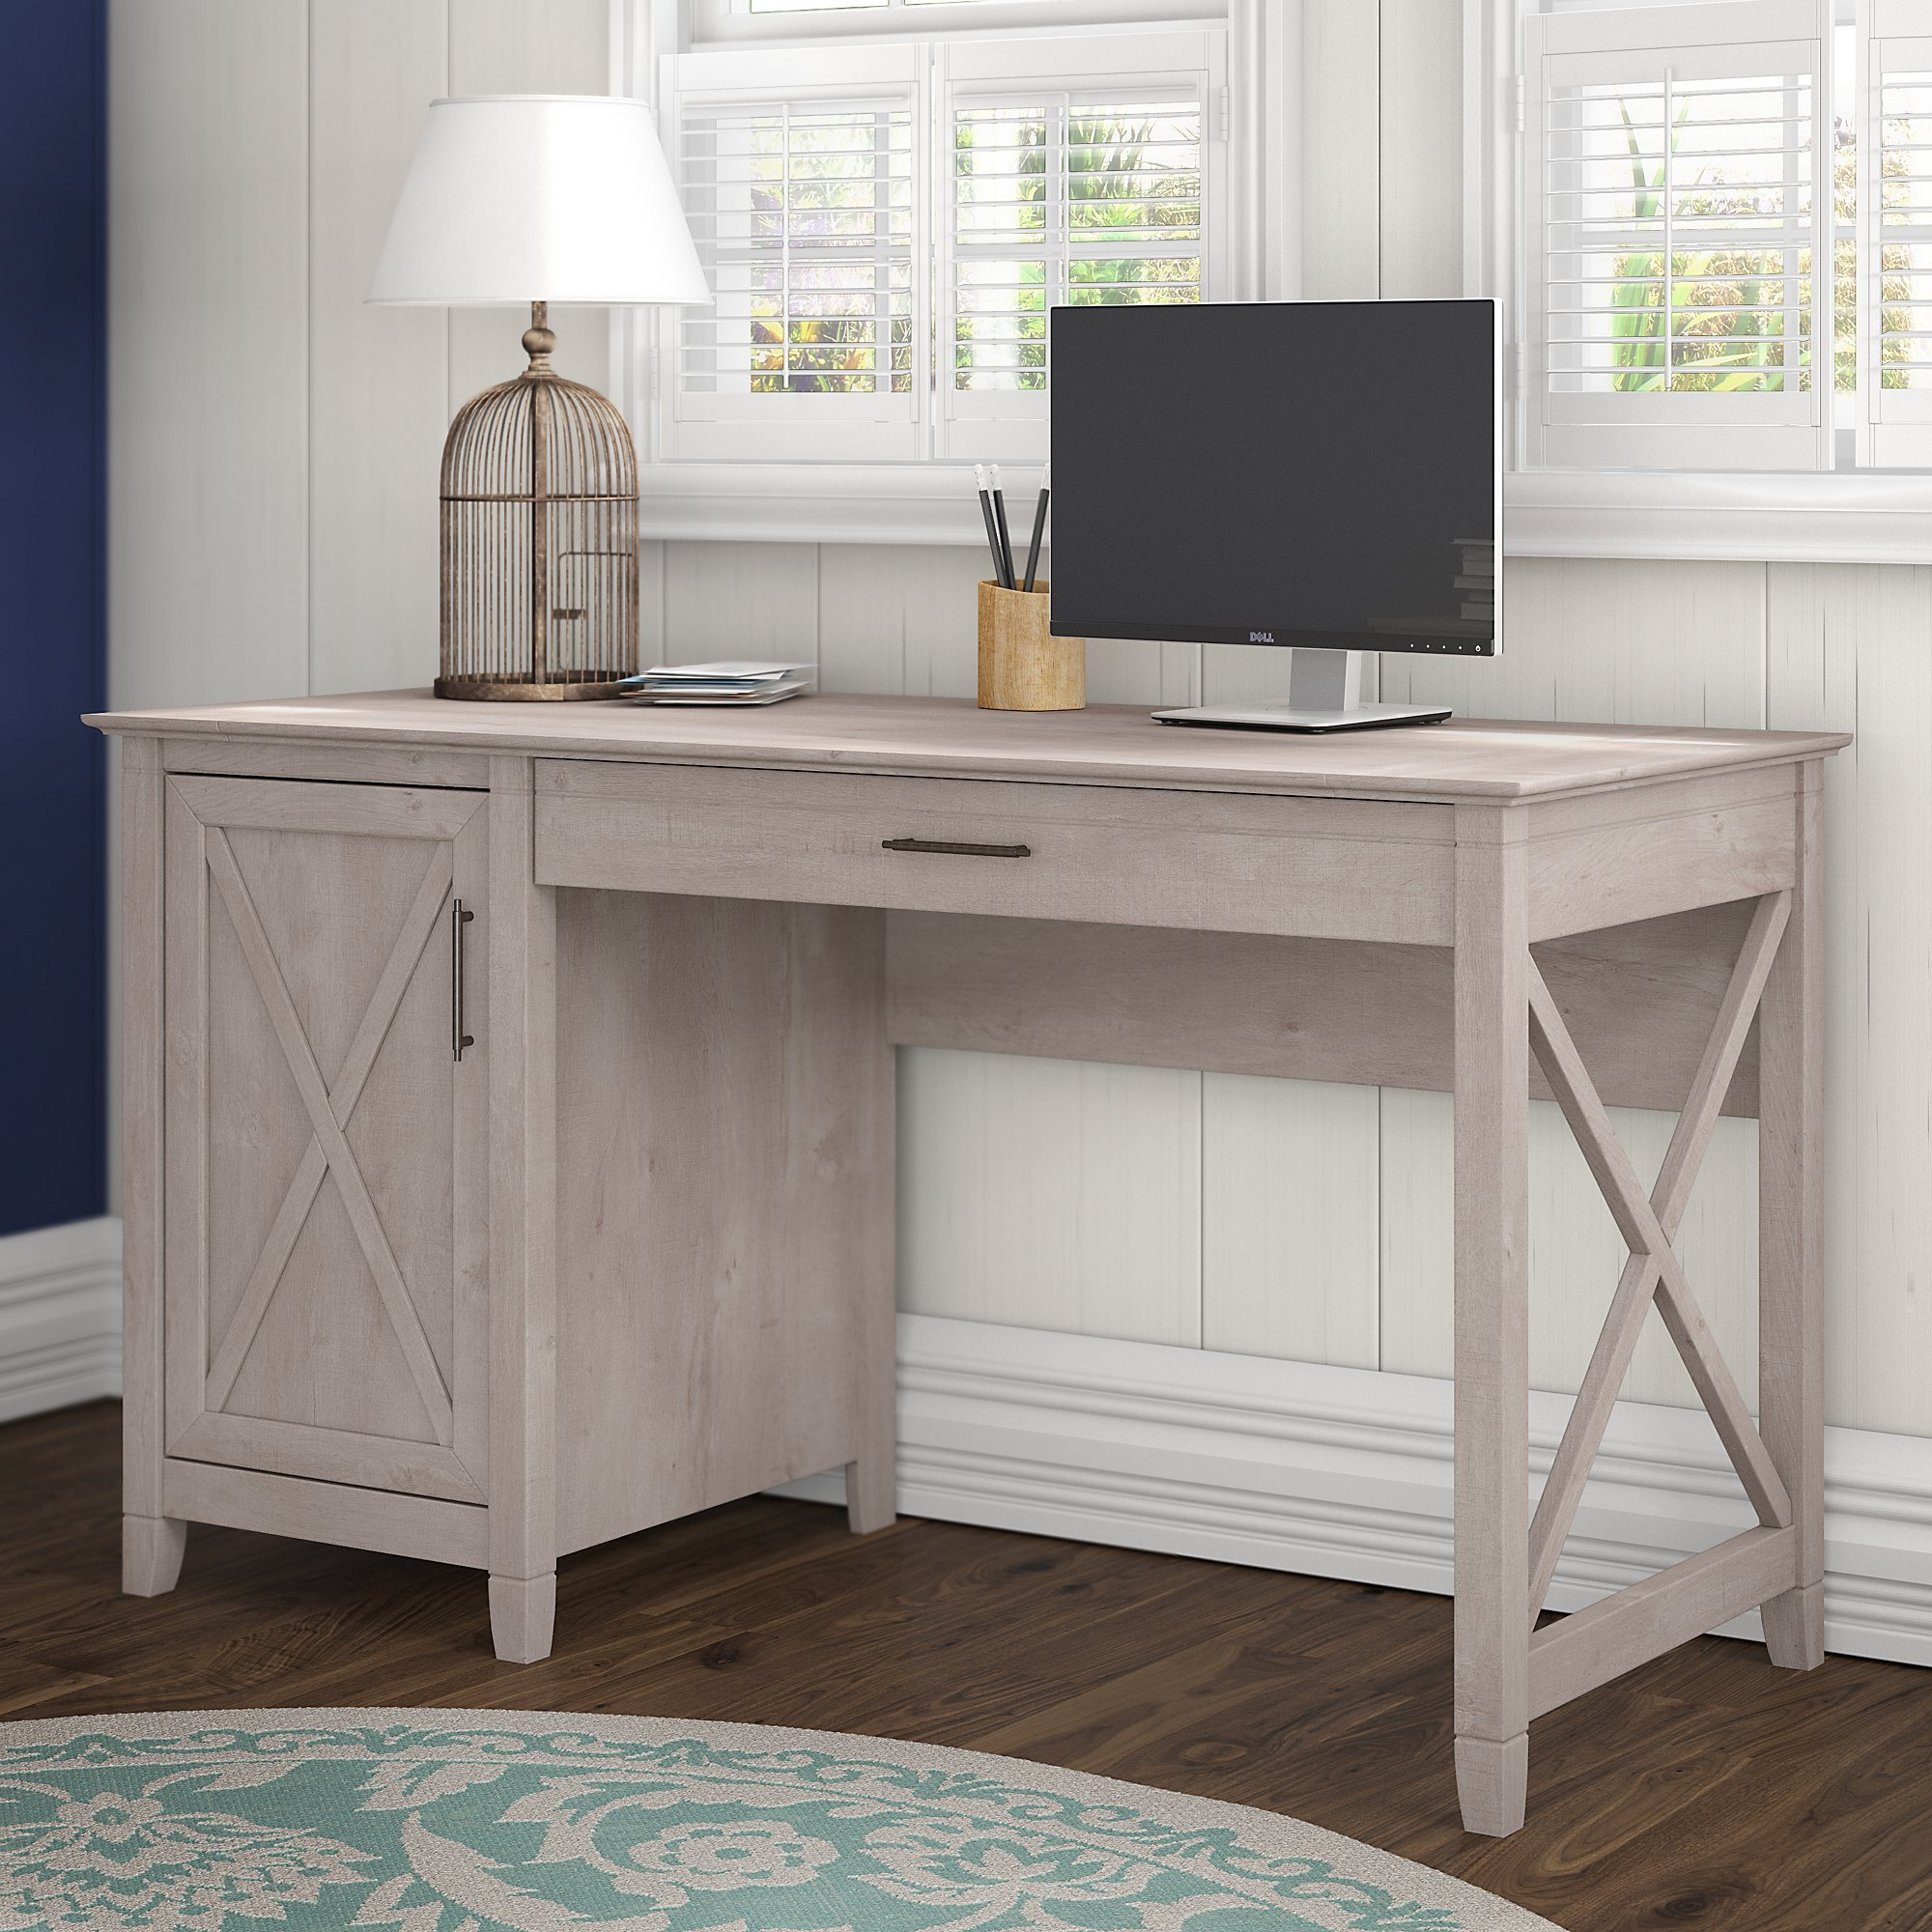 Bush Furniture Key West Collection 54W Single Pedestal Desk in Washed Gray by Bush Furniture